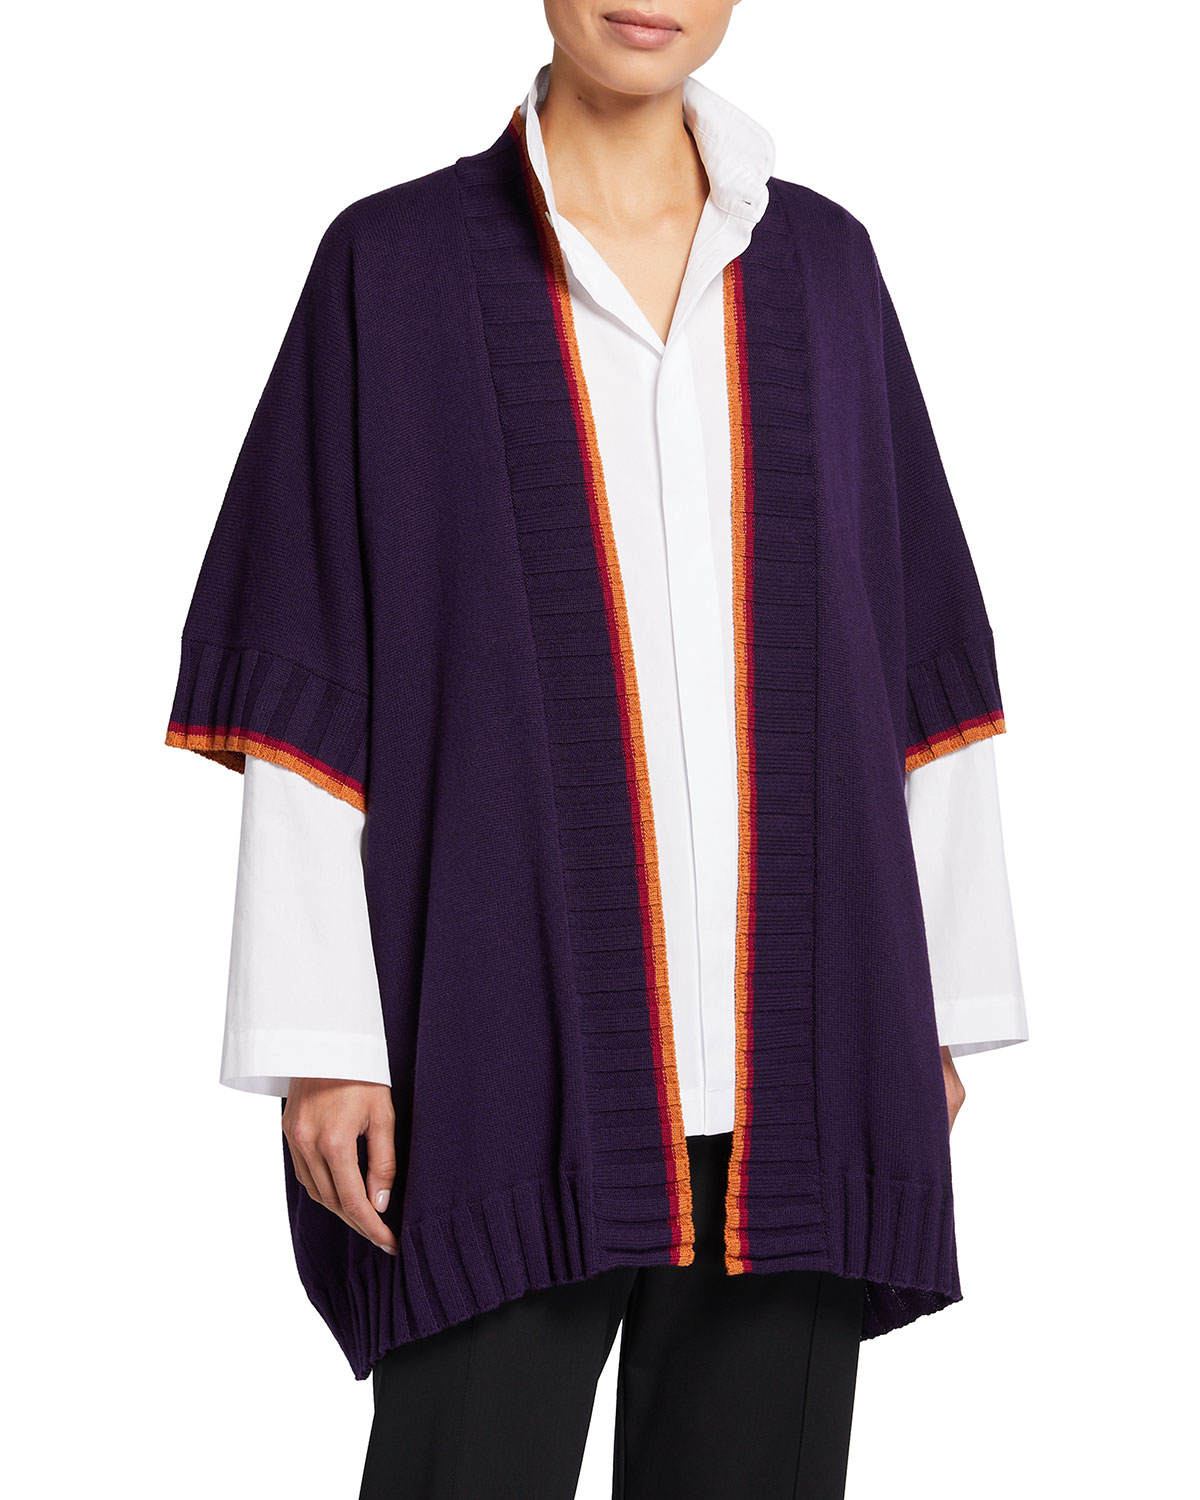 3/4-Width Square Poncho Cardigan with Ribs